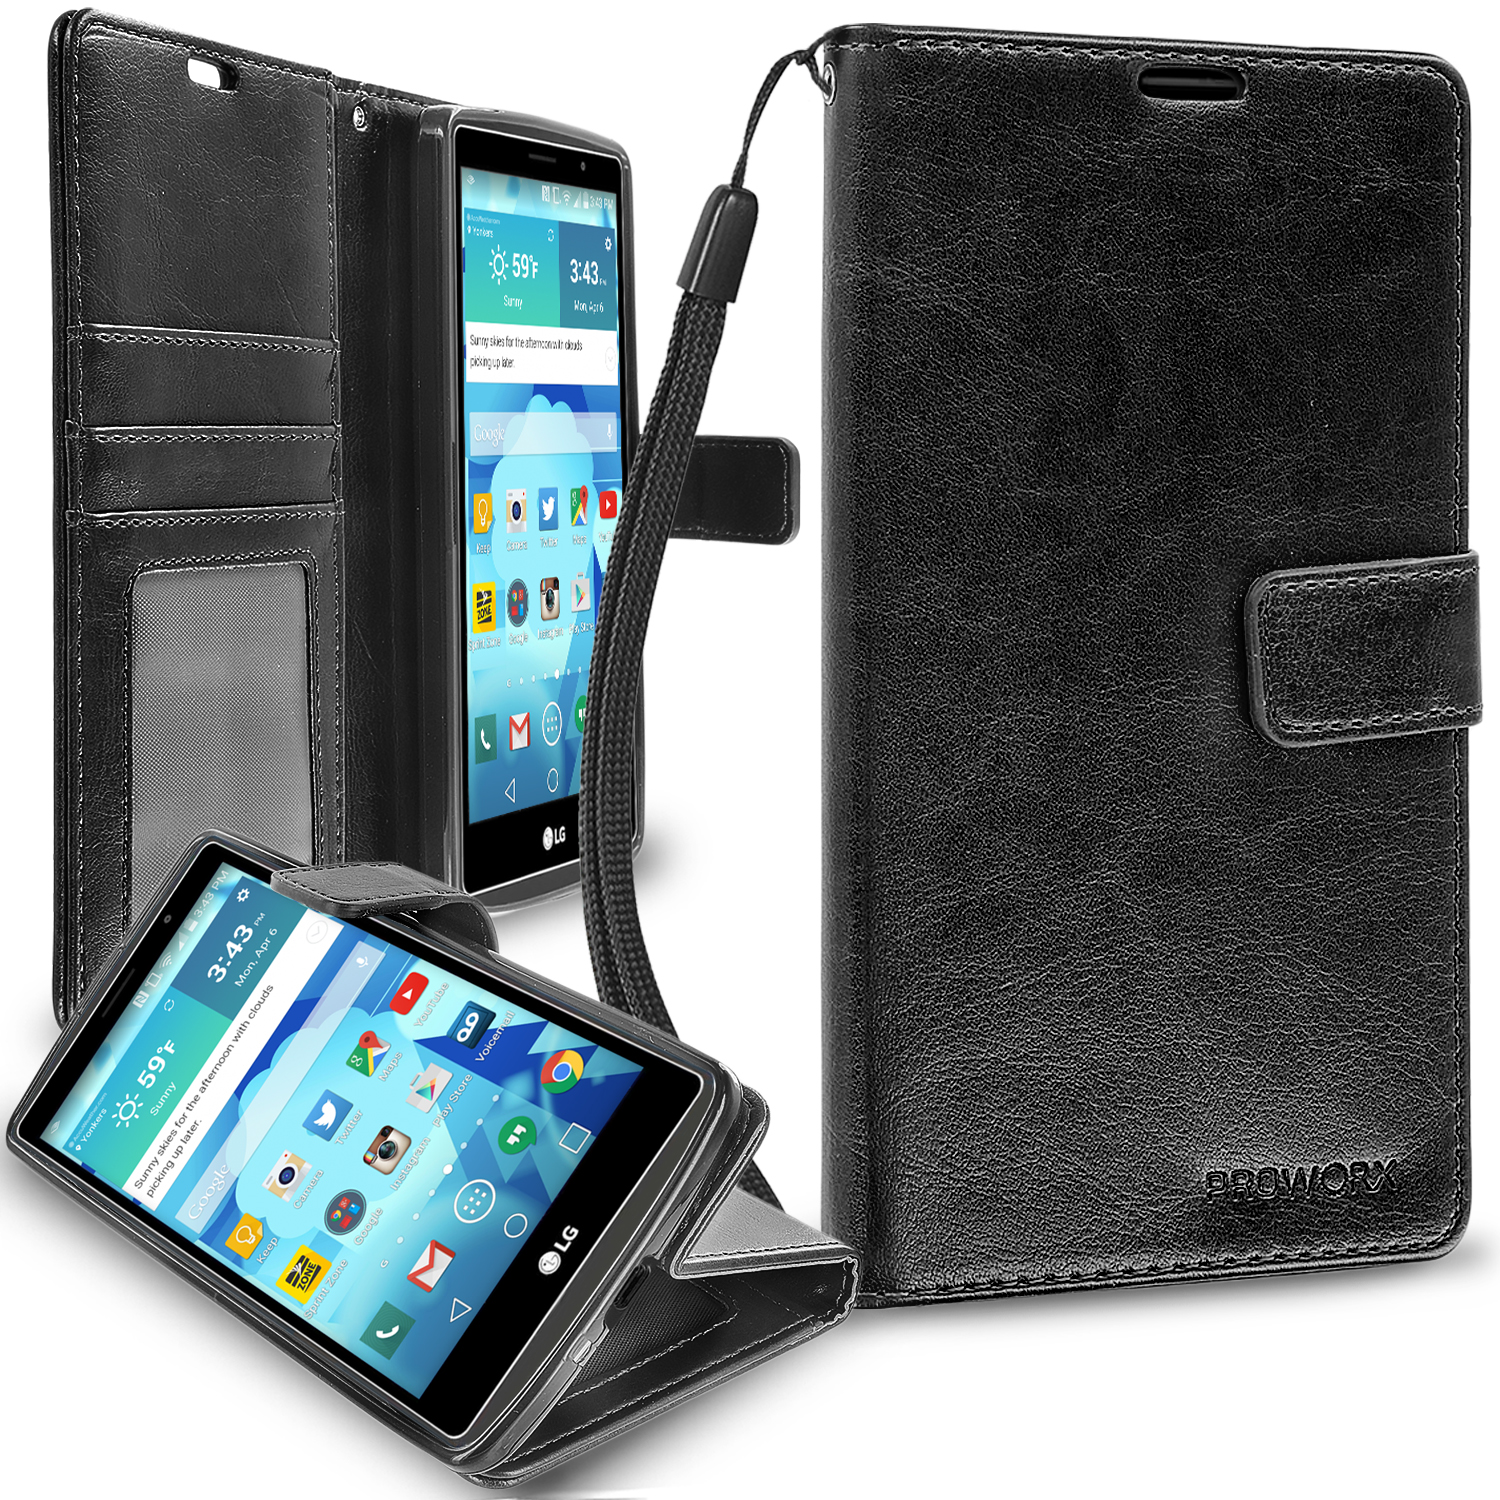 LG G Vista 2 Black ProWorx Wallet Case Luxury PU Leather Case Cover With Card Slots & Stand